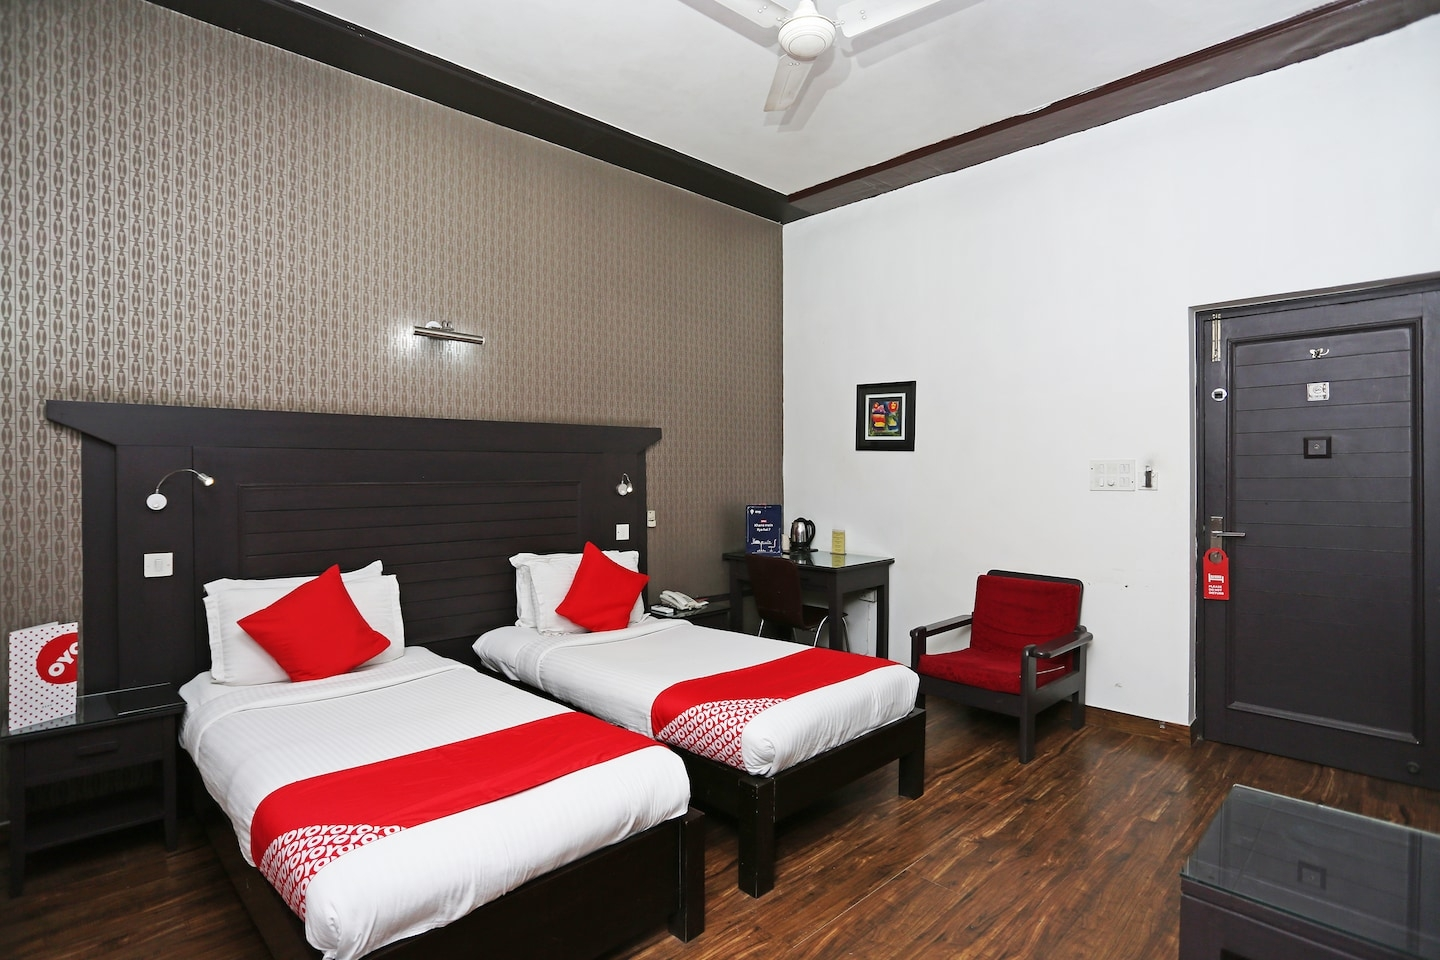 Hospitality chain OYO has raised a strategic investment from US